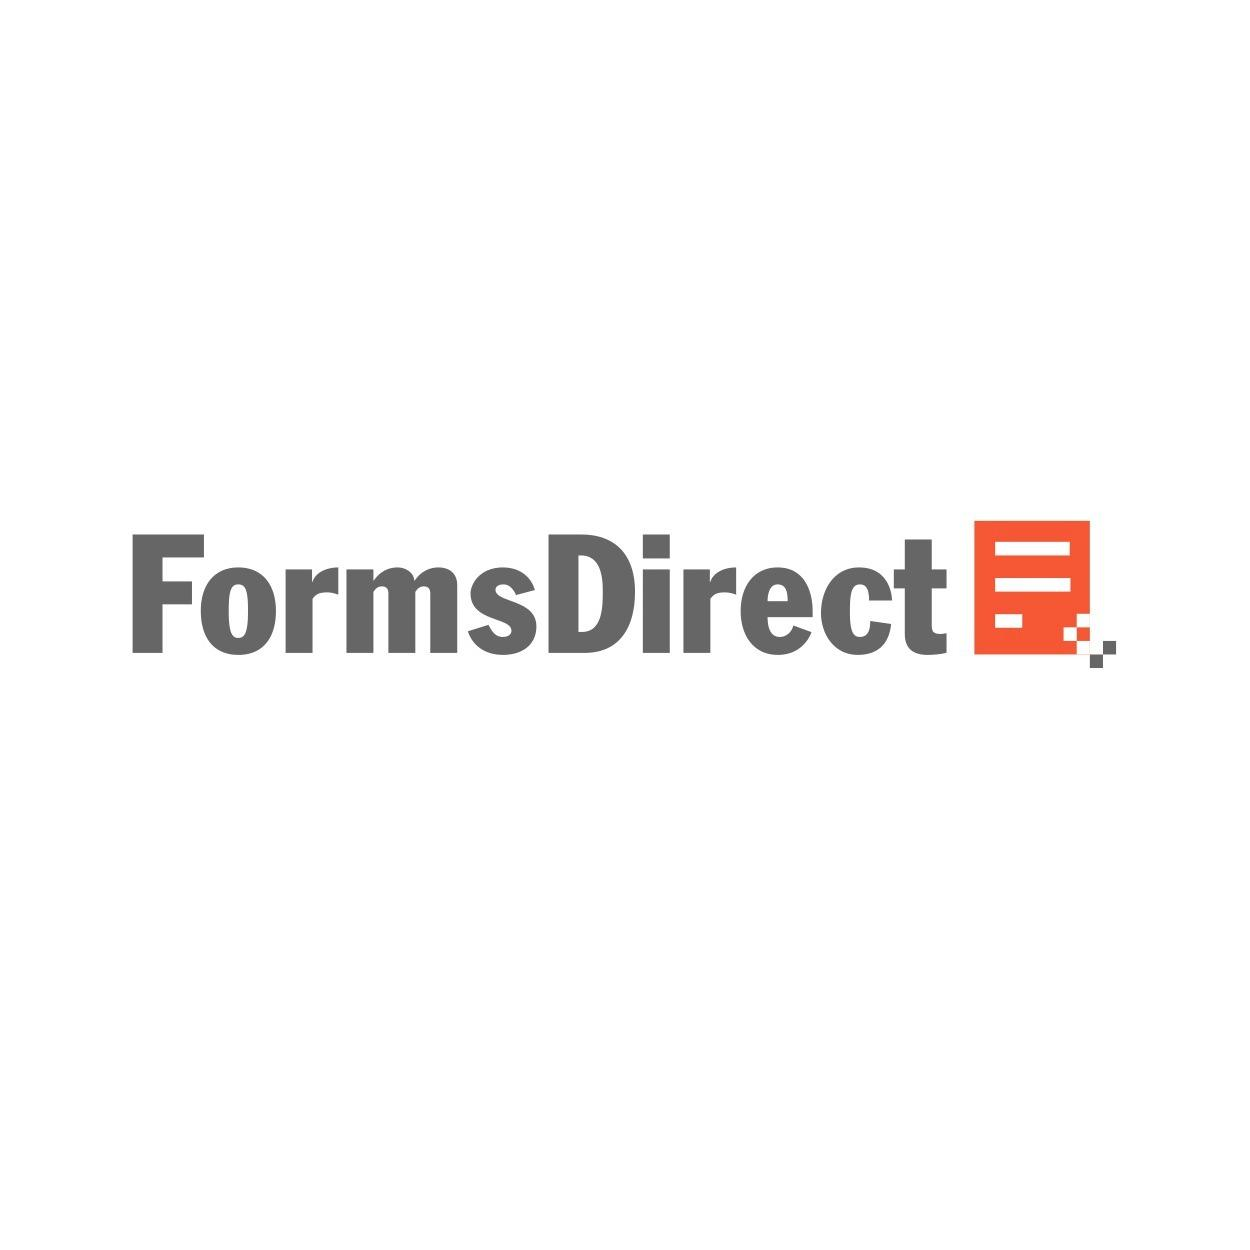 Forms Direct Inc.